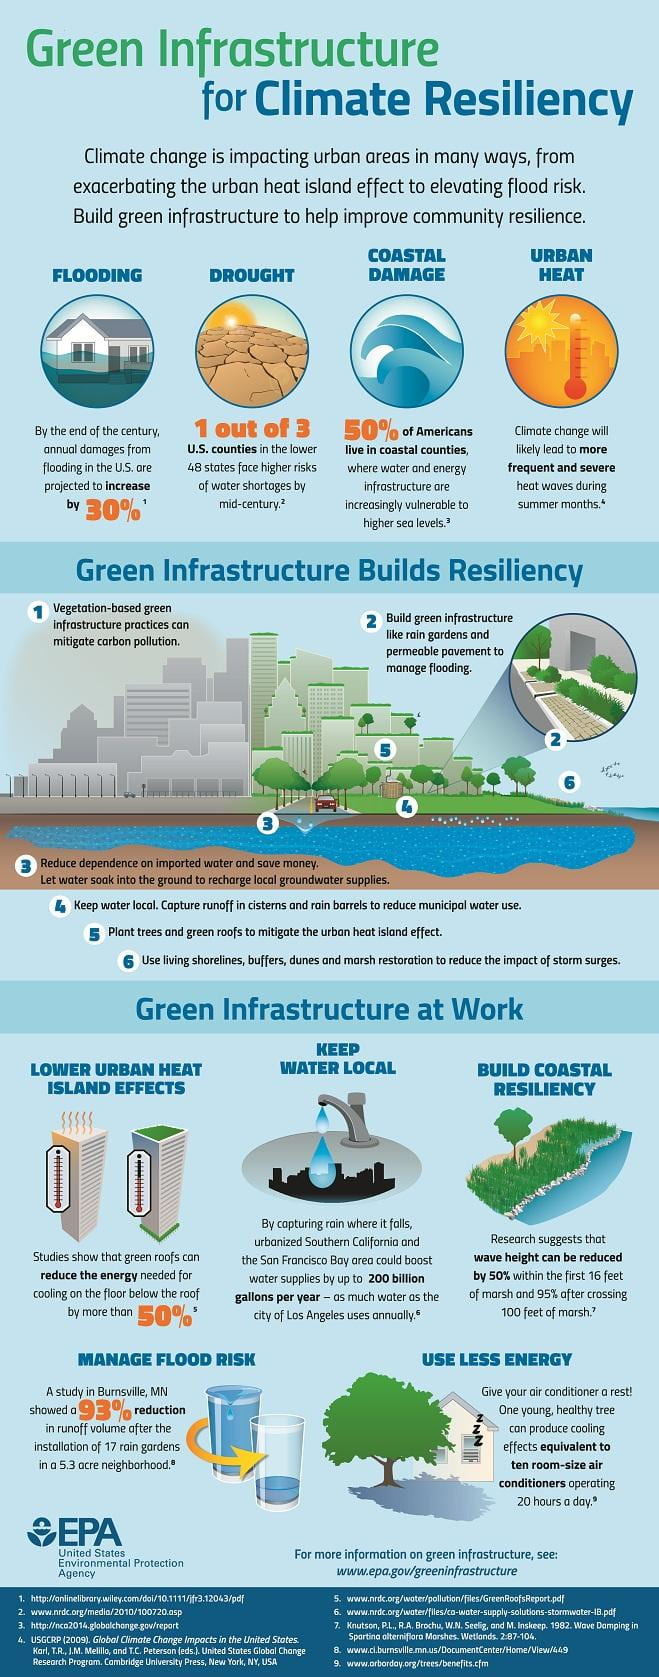 Infographic highlighing the environmental benefits of green infrastructure